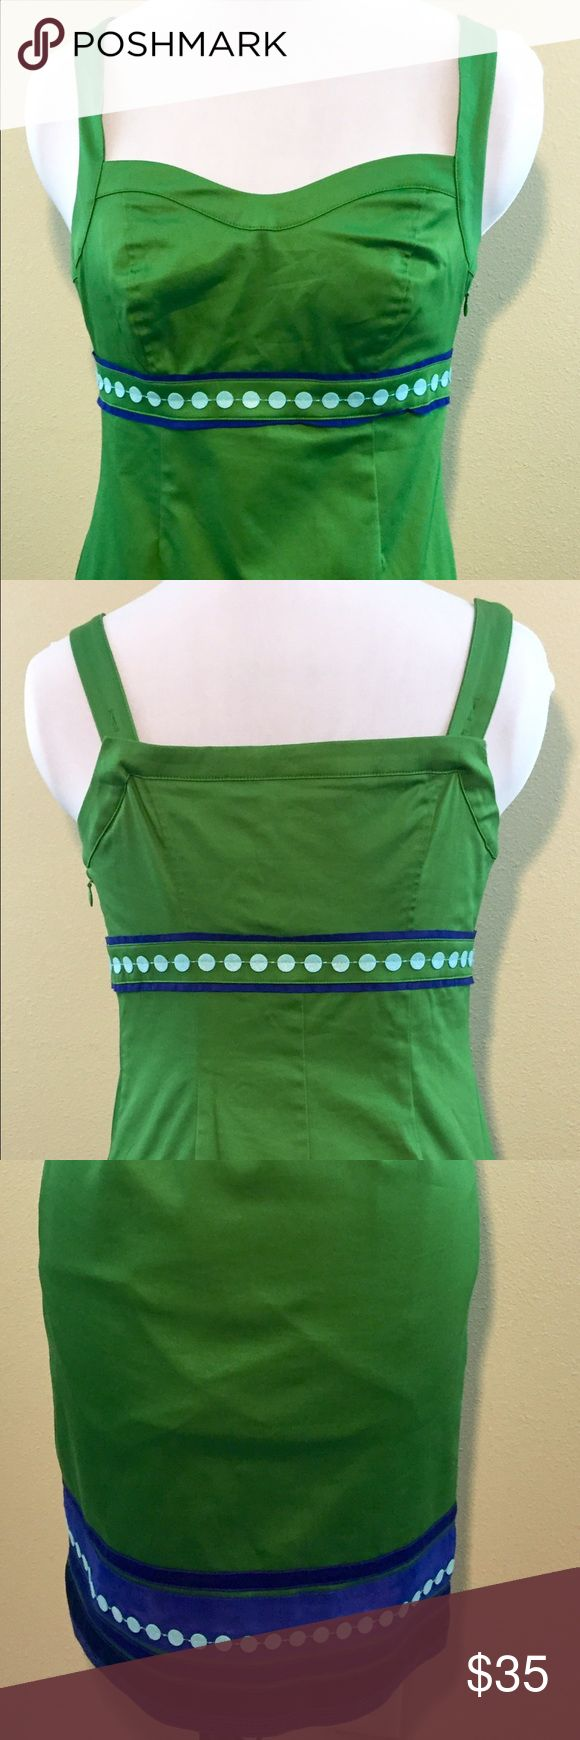 Boden Sleeveless Dress, Green, 4P, petite Boden sleeveless dress.   Size: 4P  Great Boden dress! Preowned and in great condition. Fully lined and can be dressed up or down.   Smoke and pet free home. Thank you! Boden Dresses